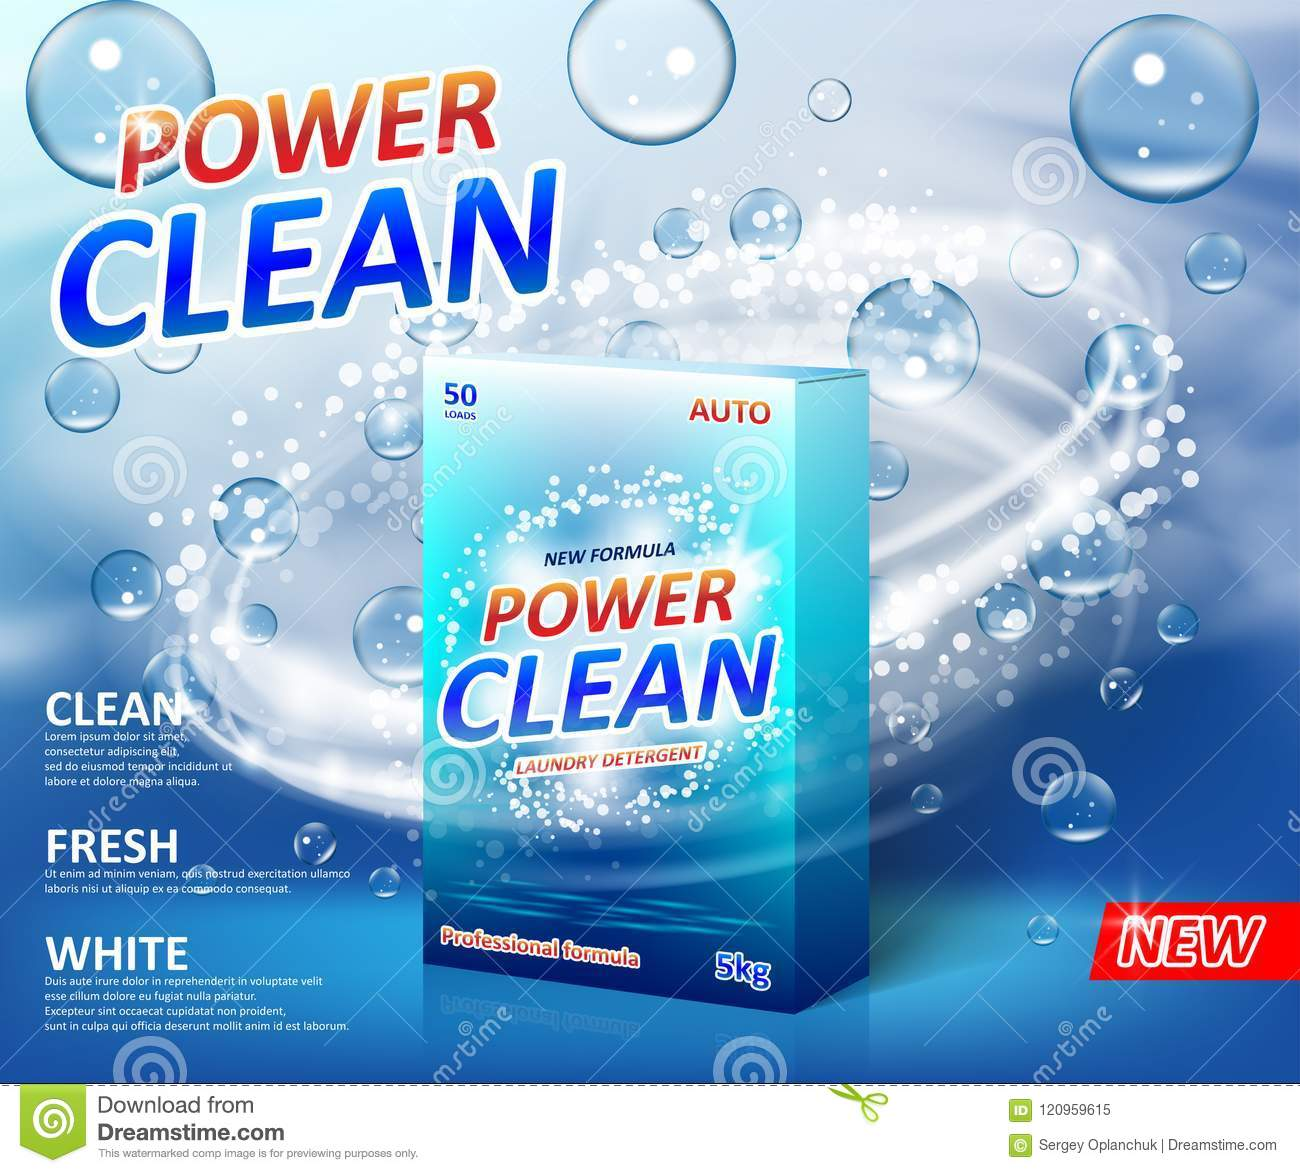 Powder laundry detergent Advertising poster. Washing powder carton box package label template with soap bubbles. Stain